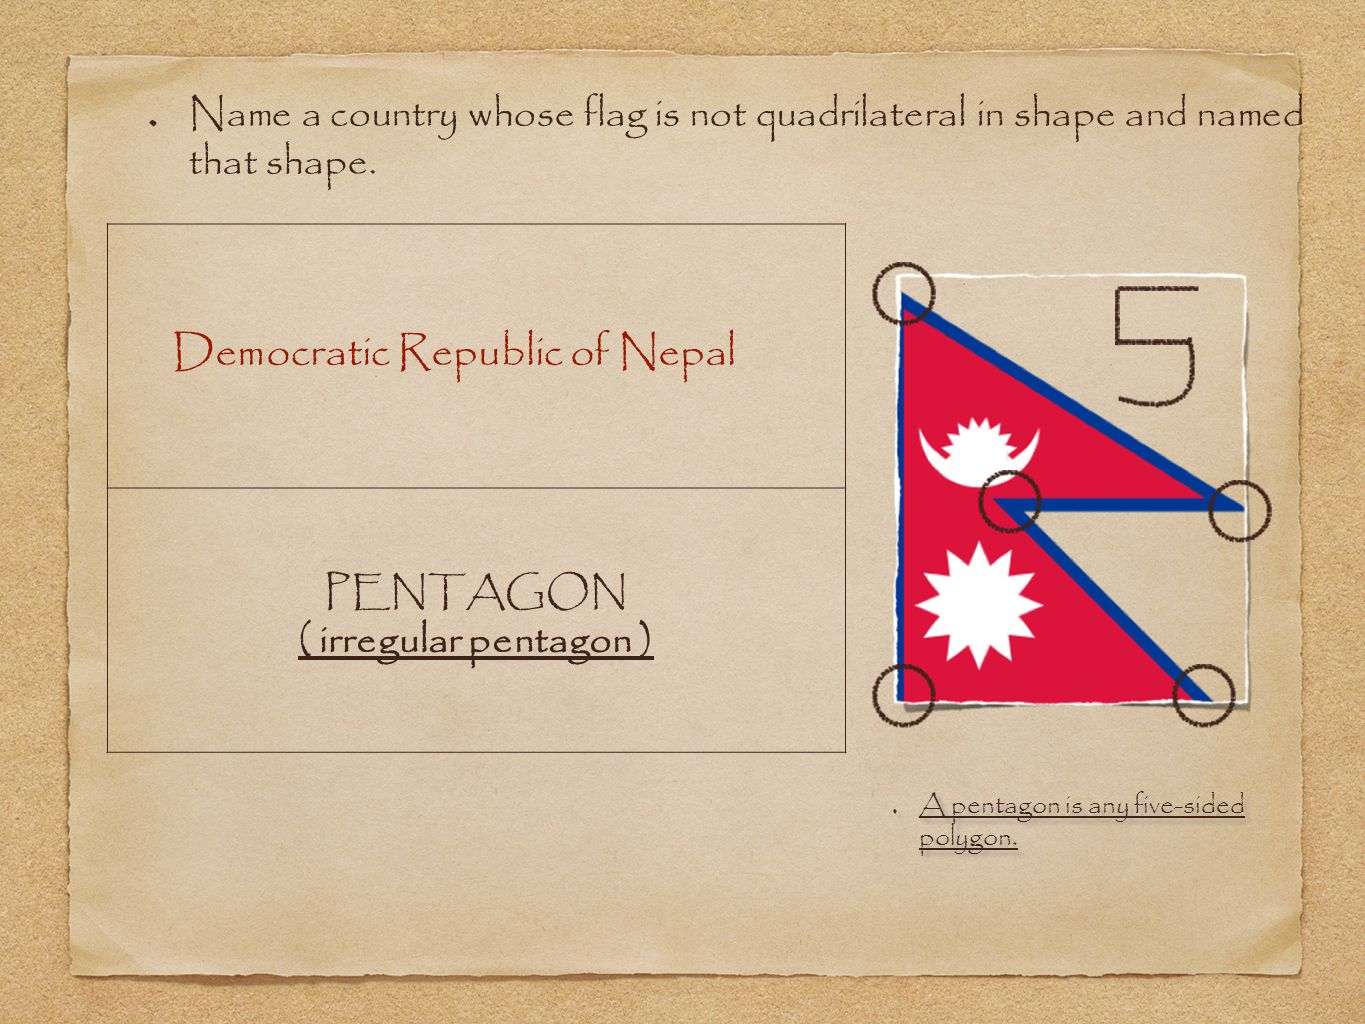 Democratic Republic of Nepal